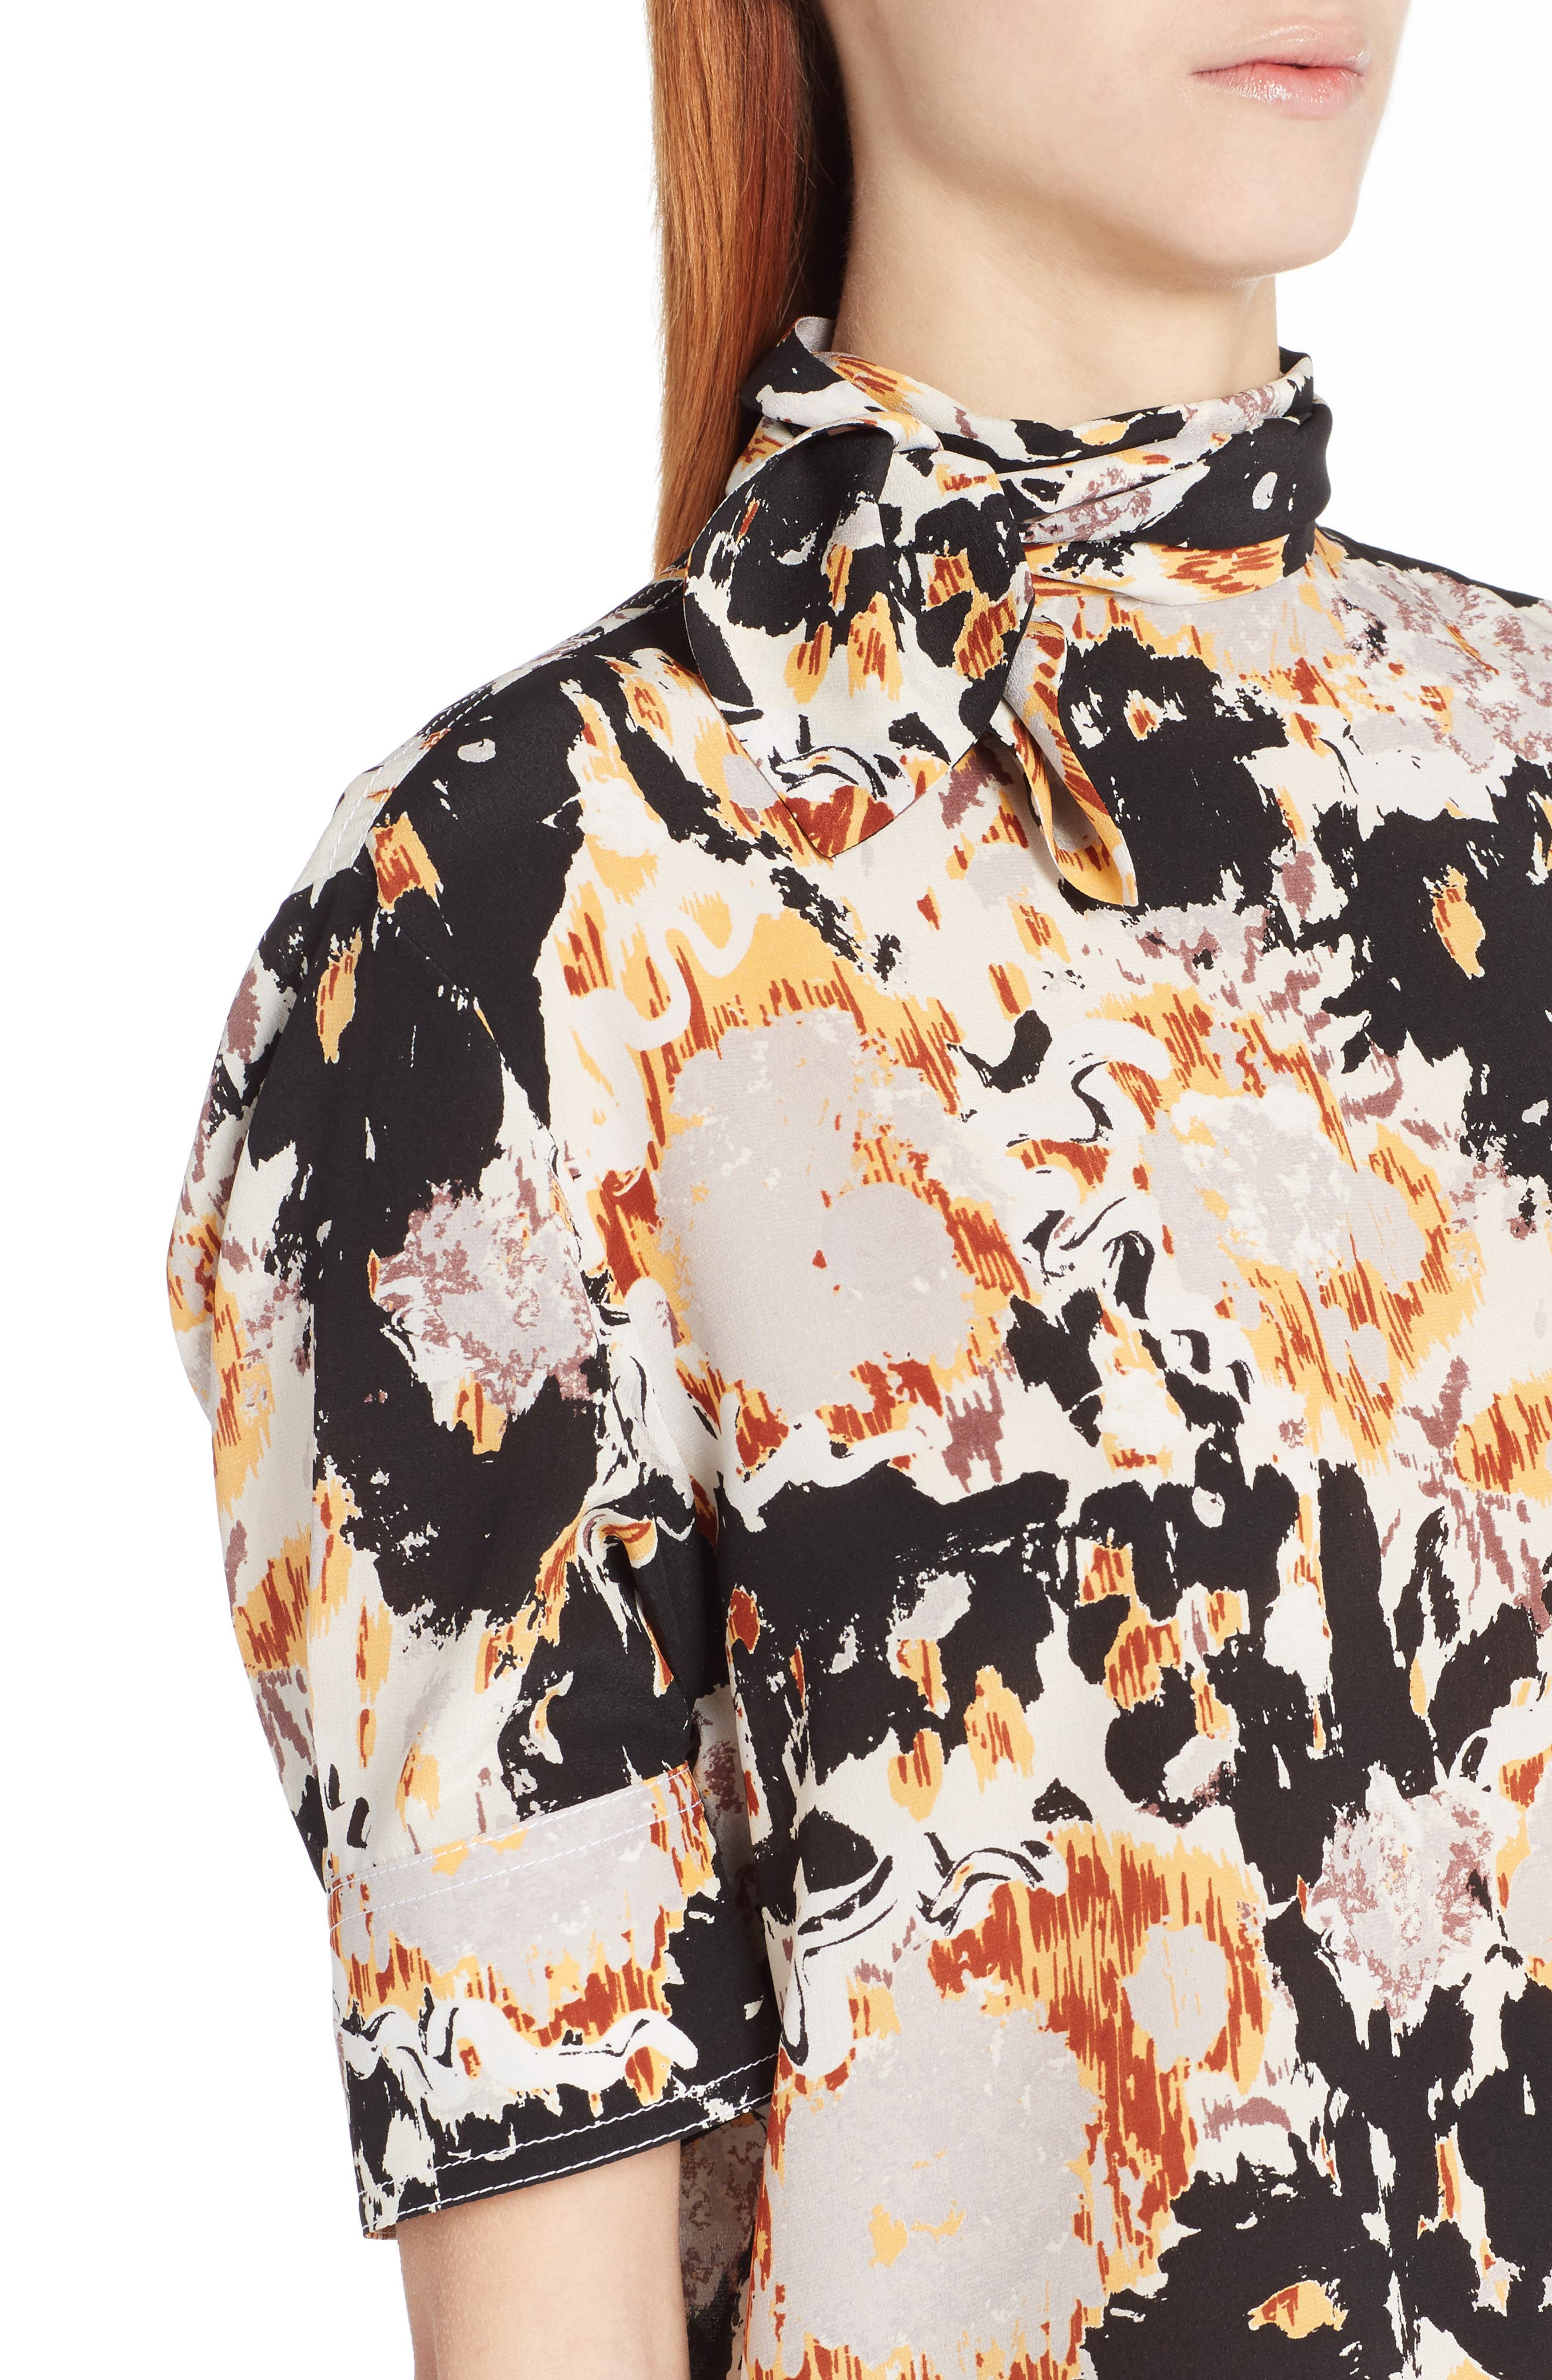 Magma Print Silk Crepe Blouse,                             Alternate thumbnail 4, color,                             800